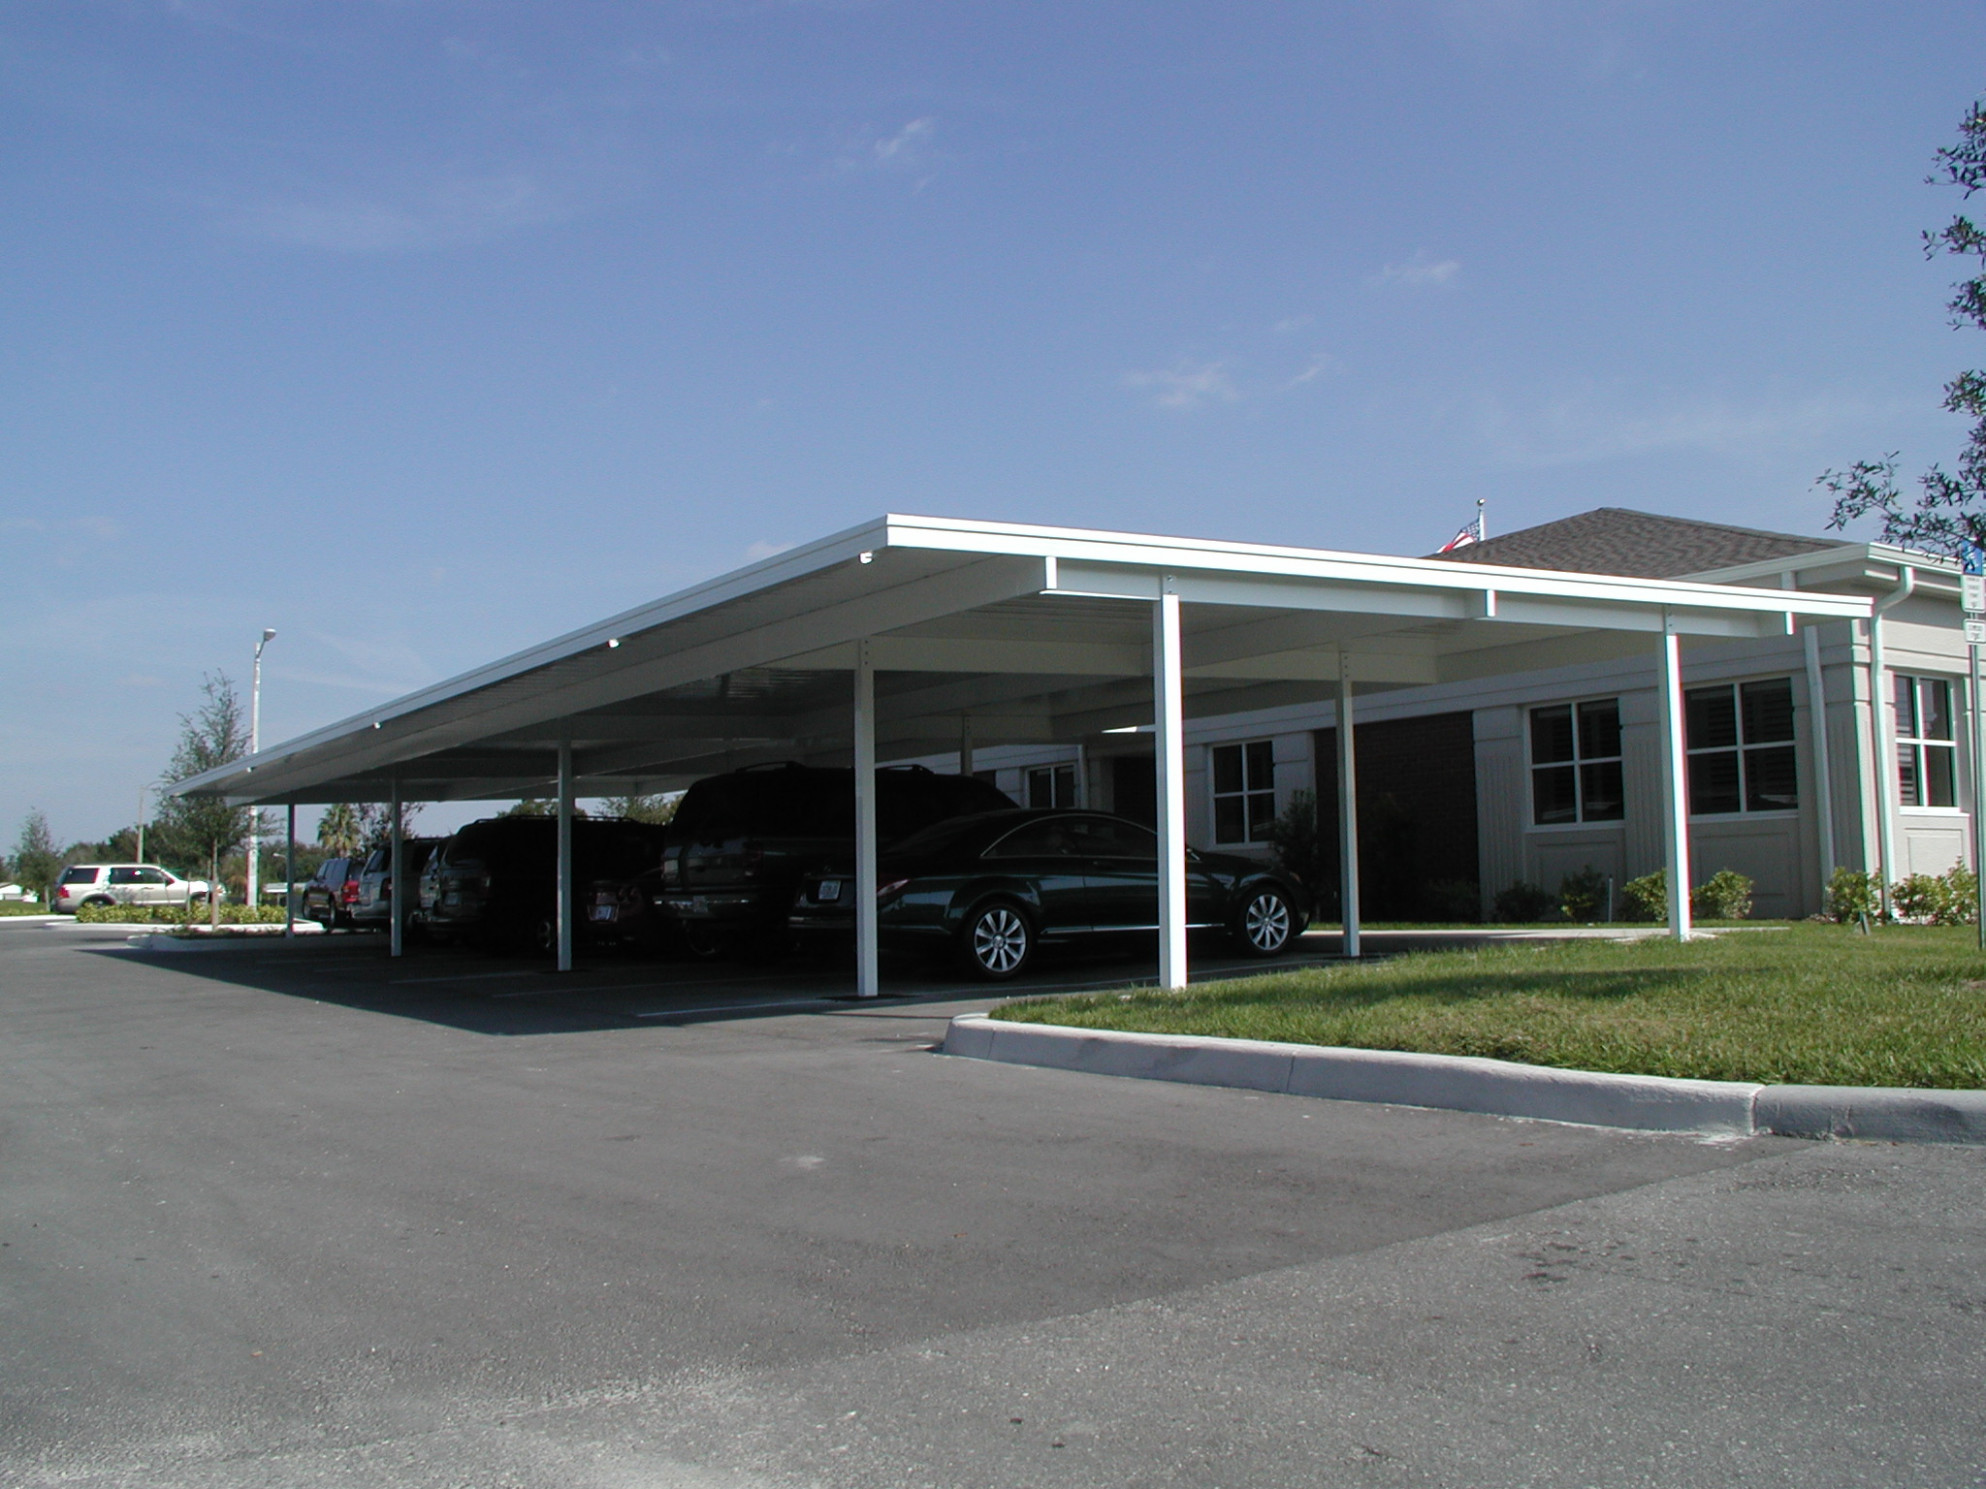 Carports And Walkways Lakeland | Conner Exteriors & More Carports Garage Pool House